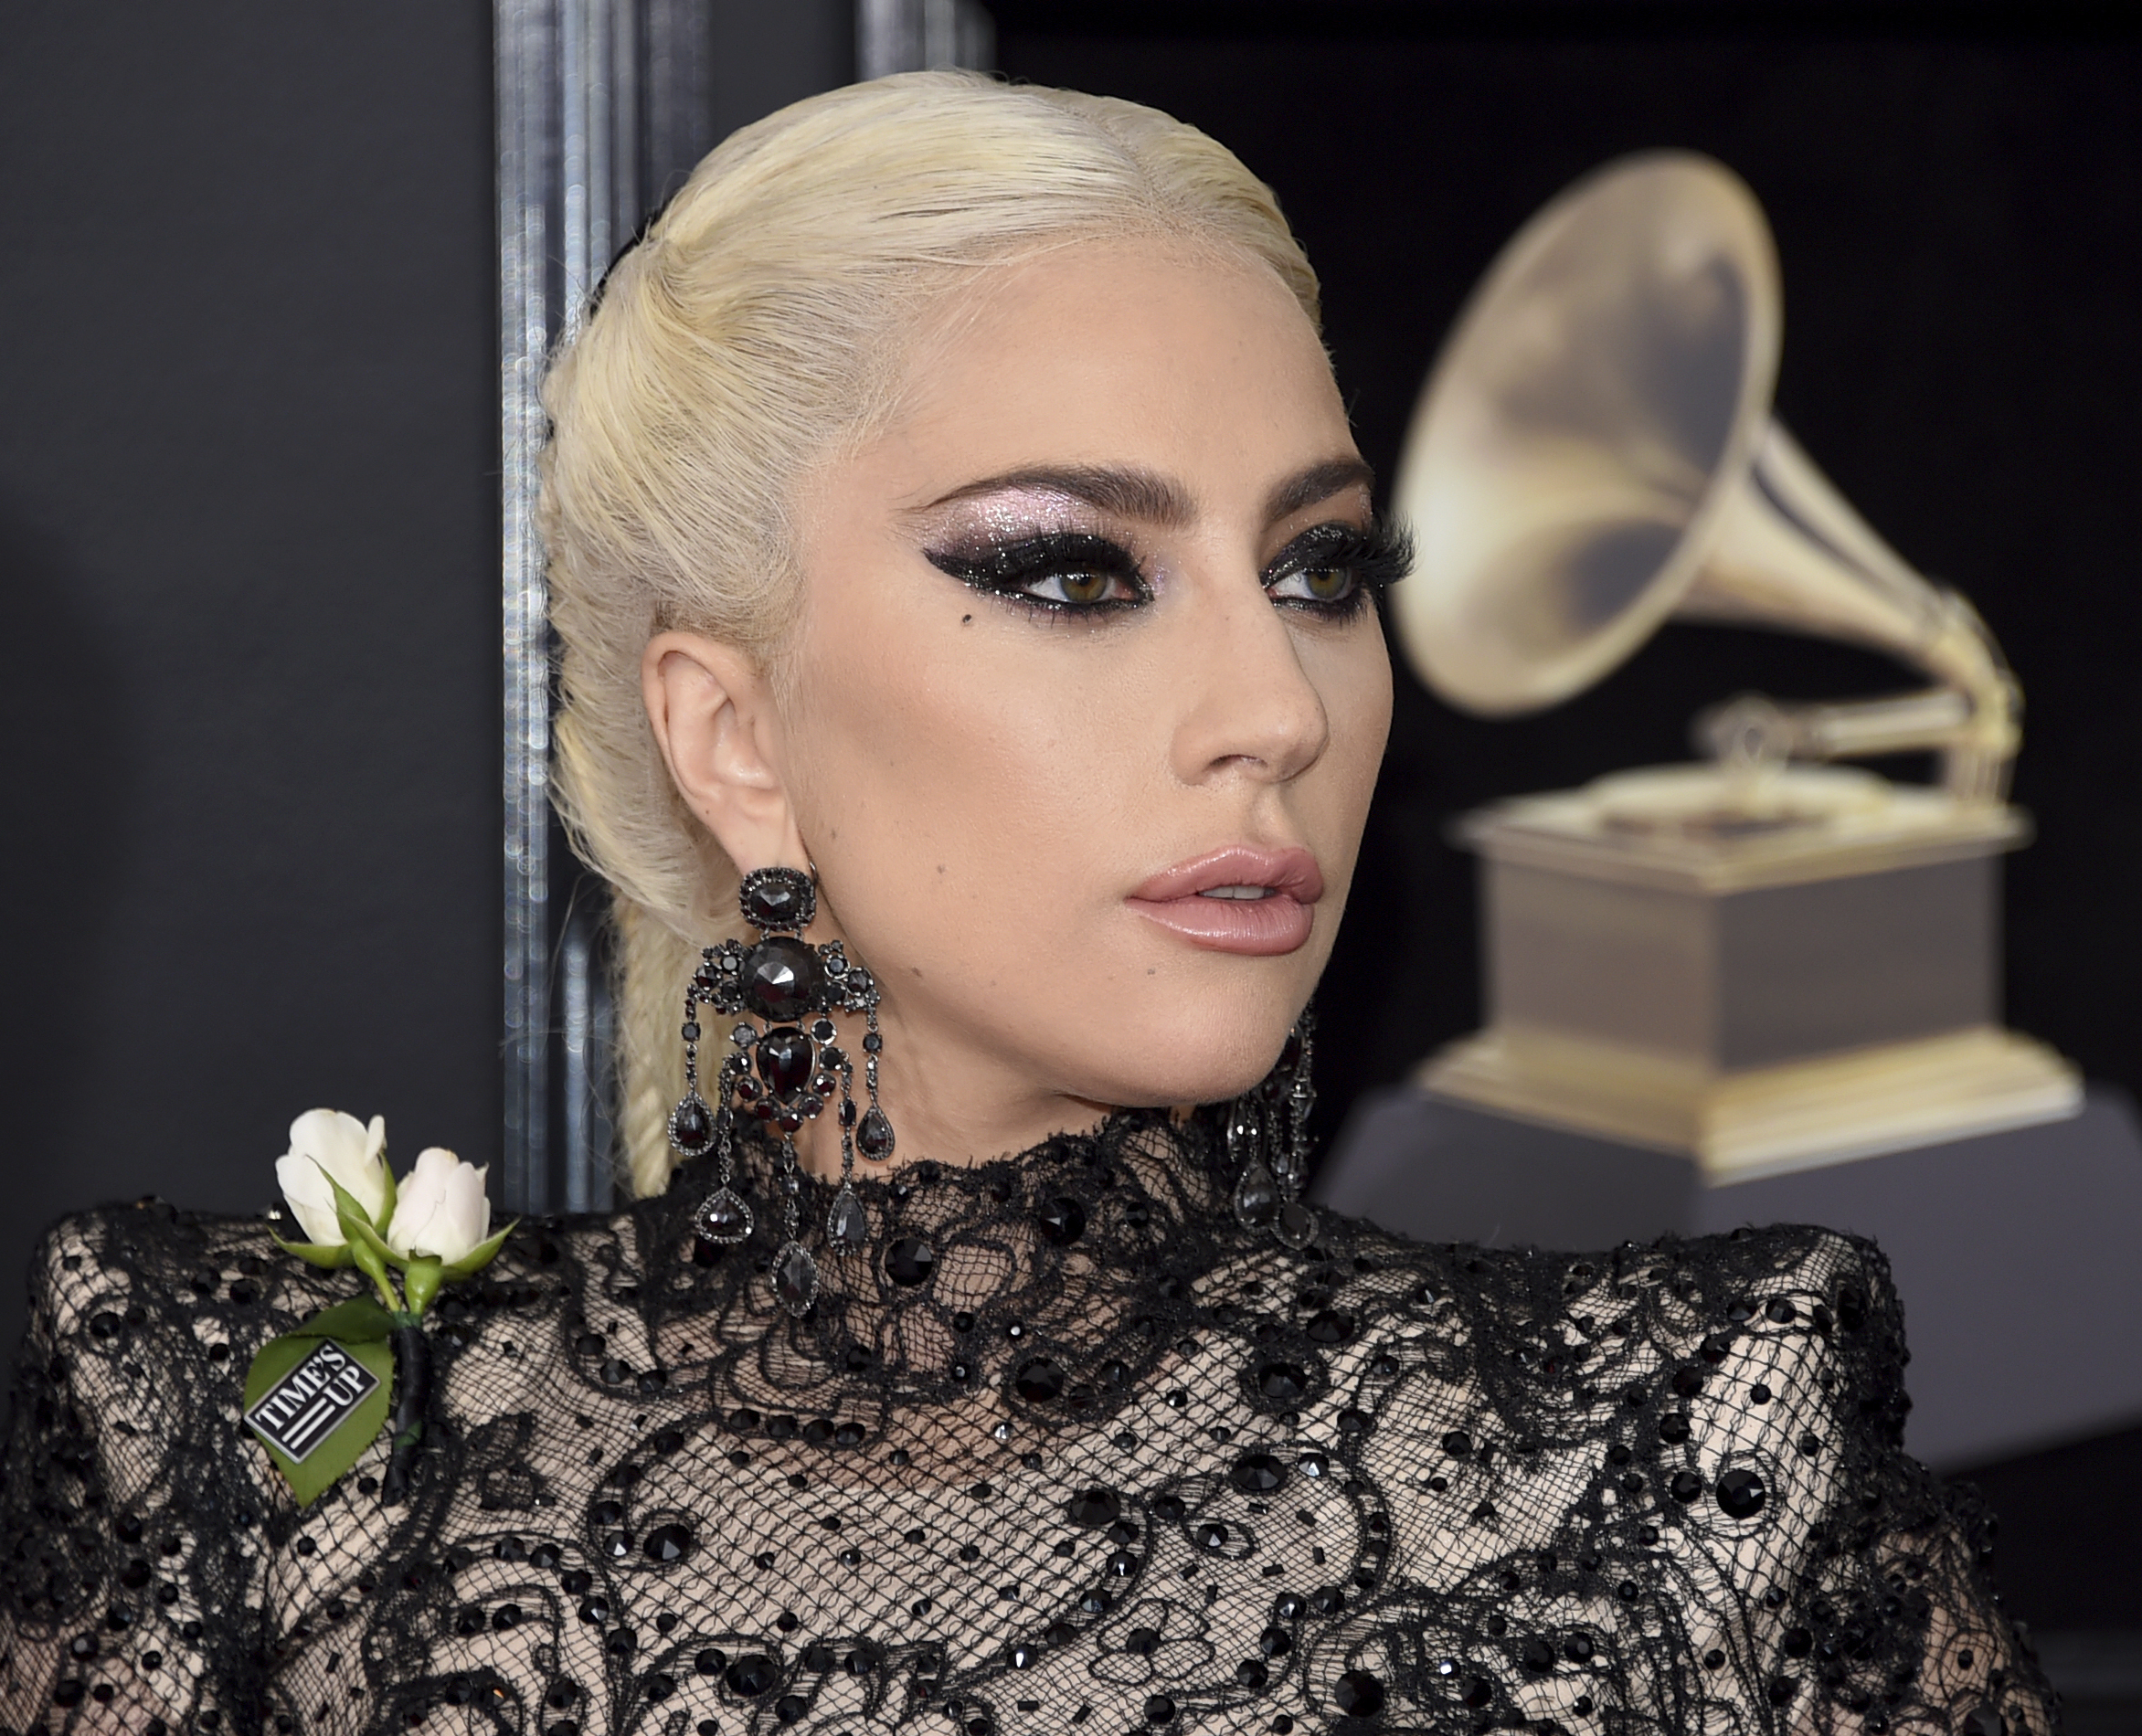 <div class='meta'><div class='origin-logo' data-origin='AP'></div><span class='caption-text' data-credit='Evan Agostini/Invision/AP'>Lady Gaga arrives at the 60th annual Grammy Awards at Madison Square Garden on Sunday, Jan. 28, 2018, in New York.</span></div>